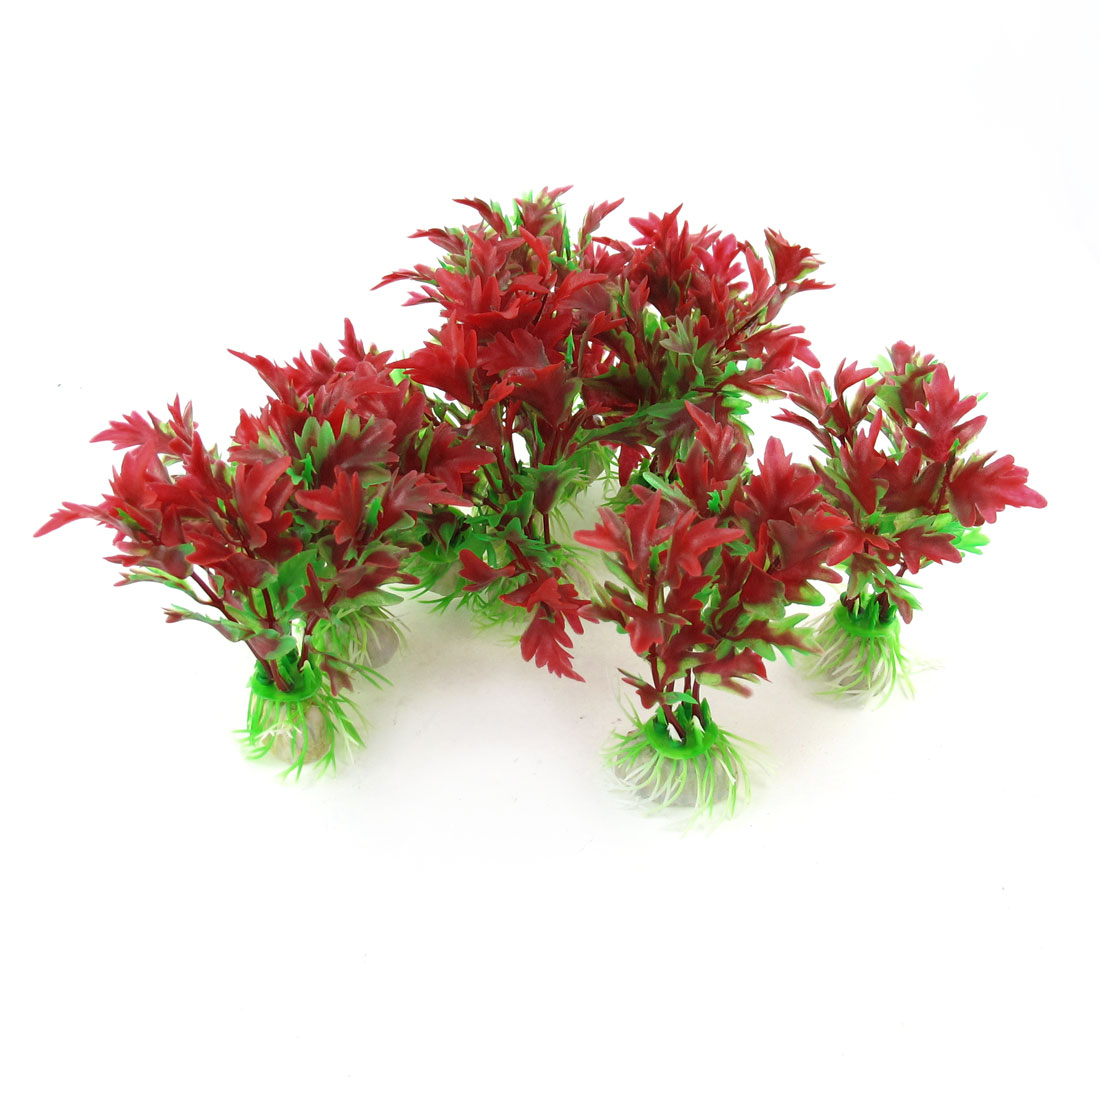 "10 Pcs 4.1"" Height Red Green Plastic Water Grass Decoration Plants for Fish Tank"